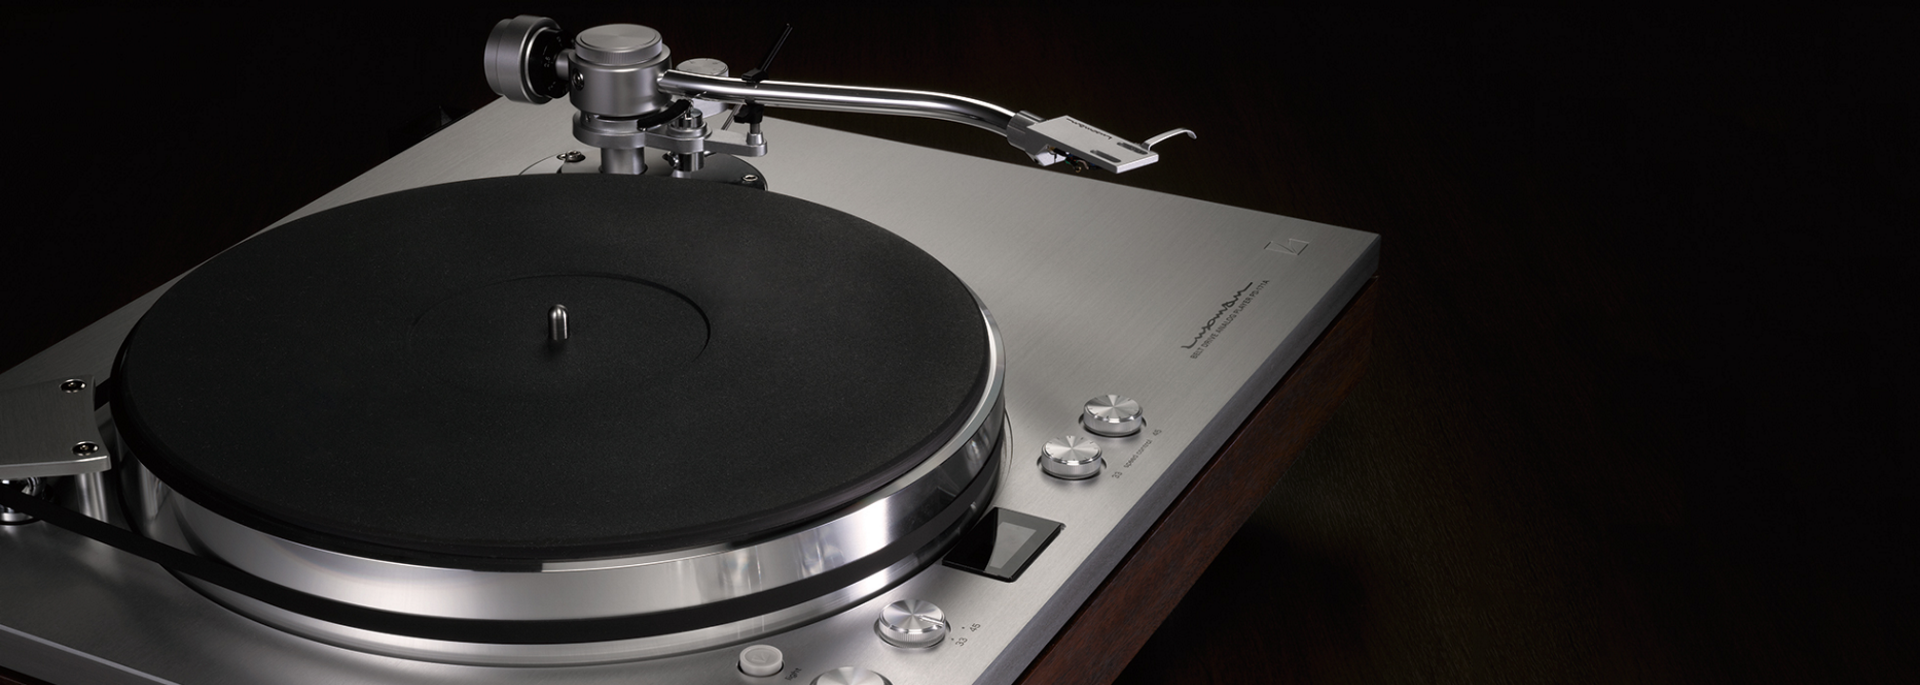 luxman turntable